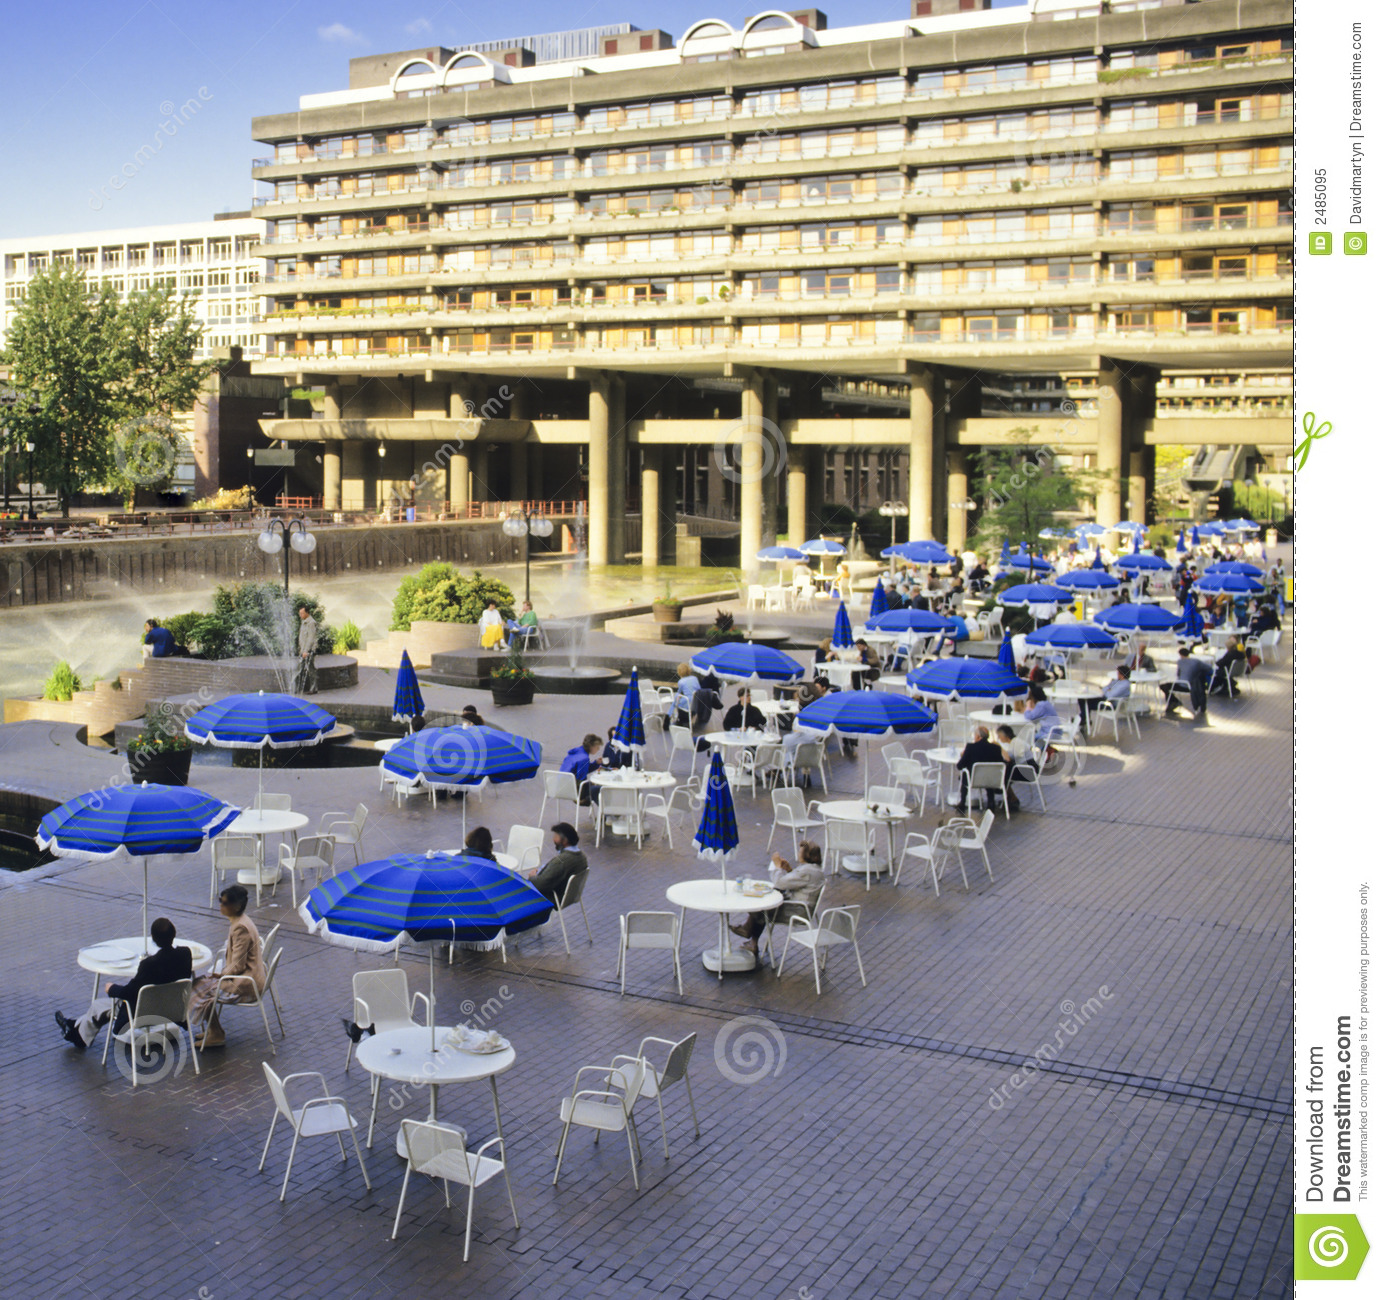 Open air cafe stock image. Image of apartments, city ...